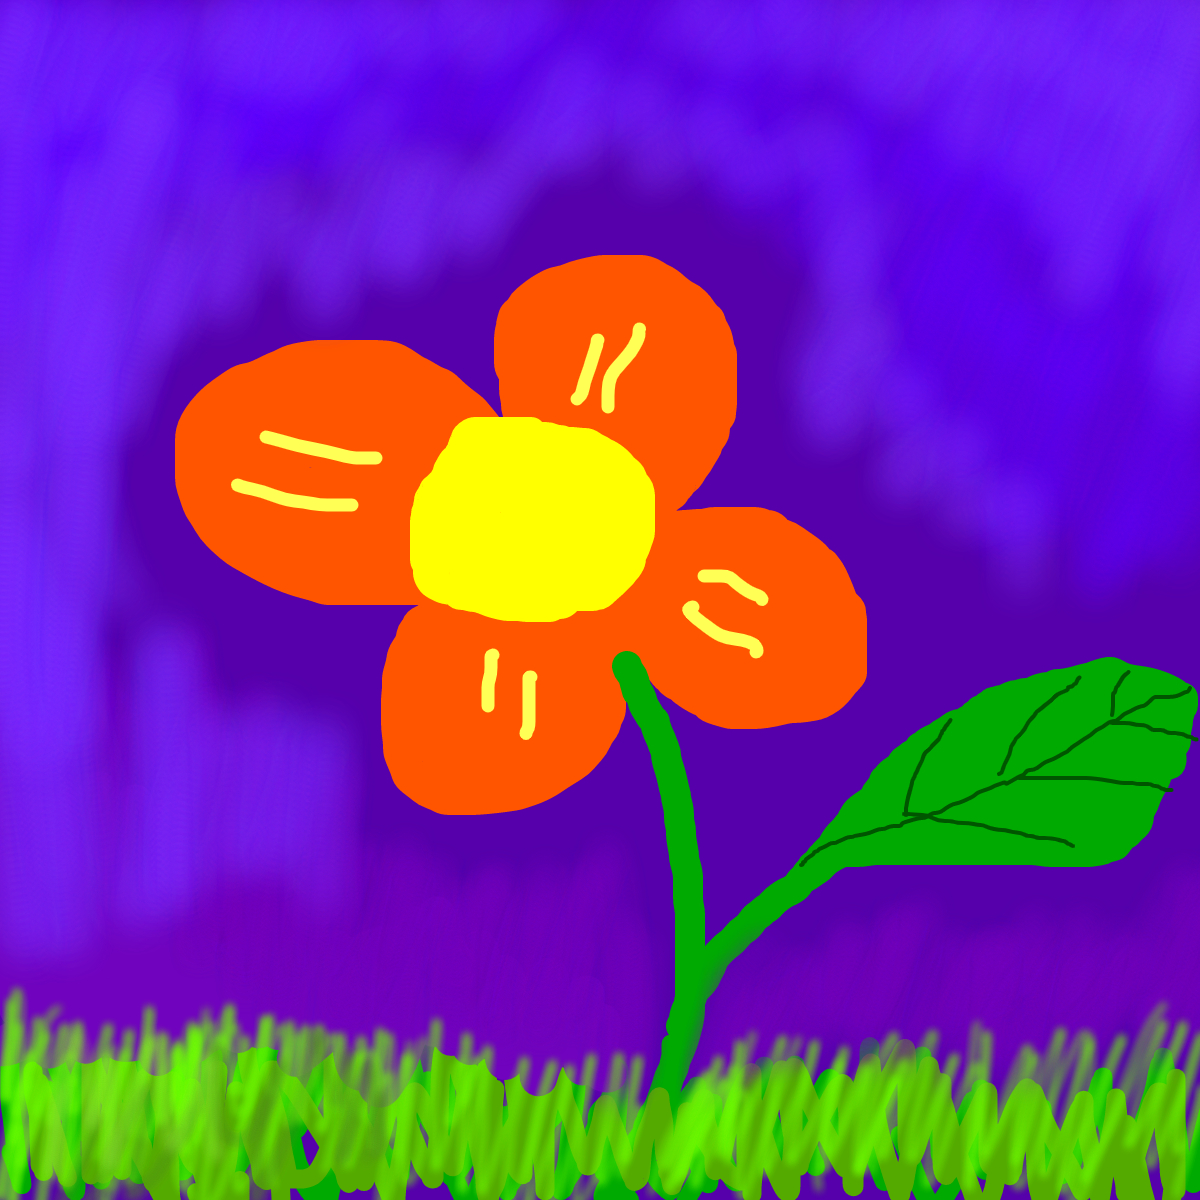 A flower drawing